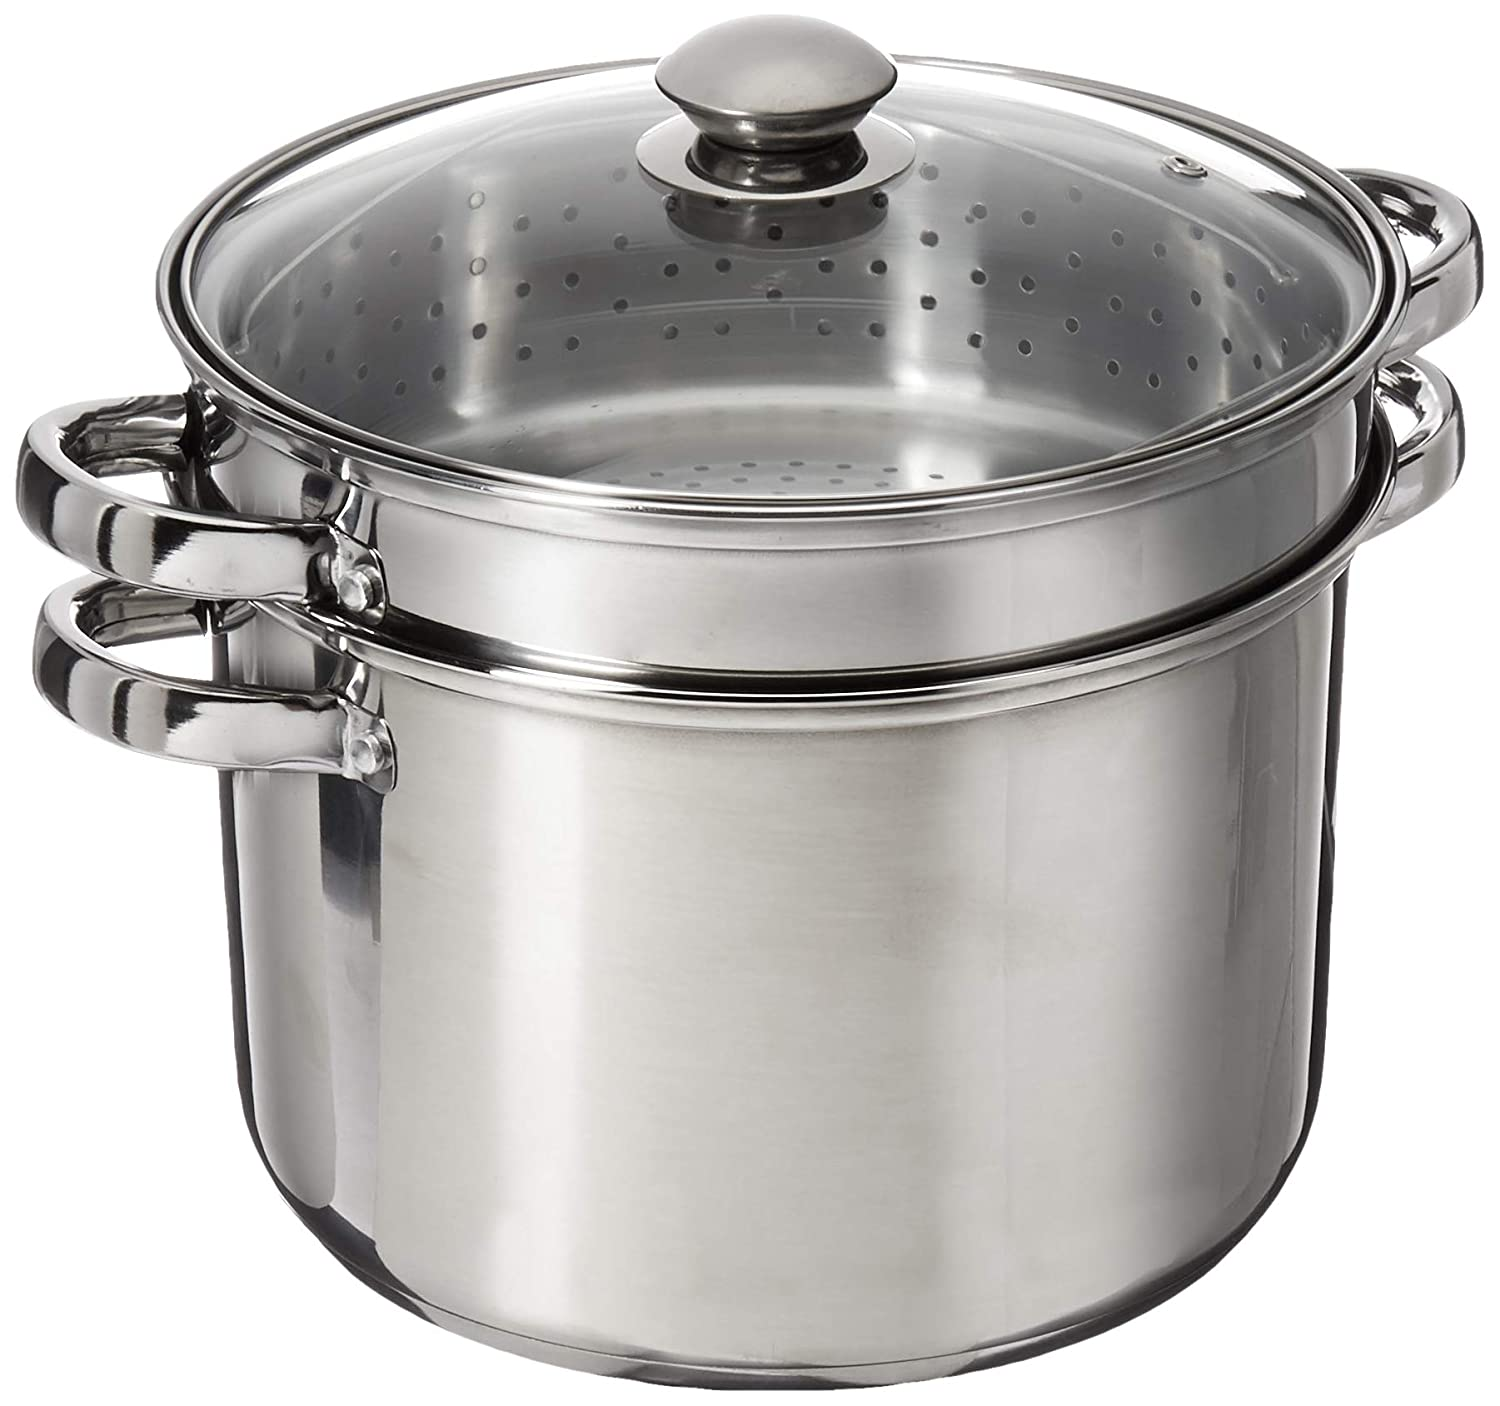 8 Quart 18/10 Stainless Steel 4 Piece Multi-Cookware Set With Encapsulated Base